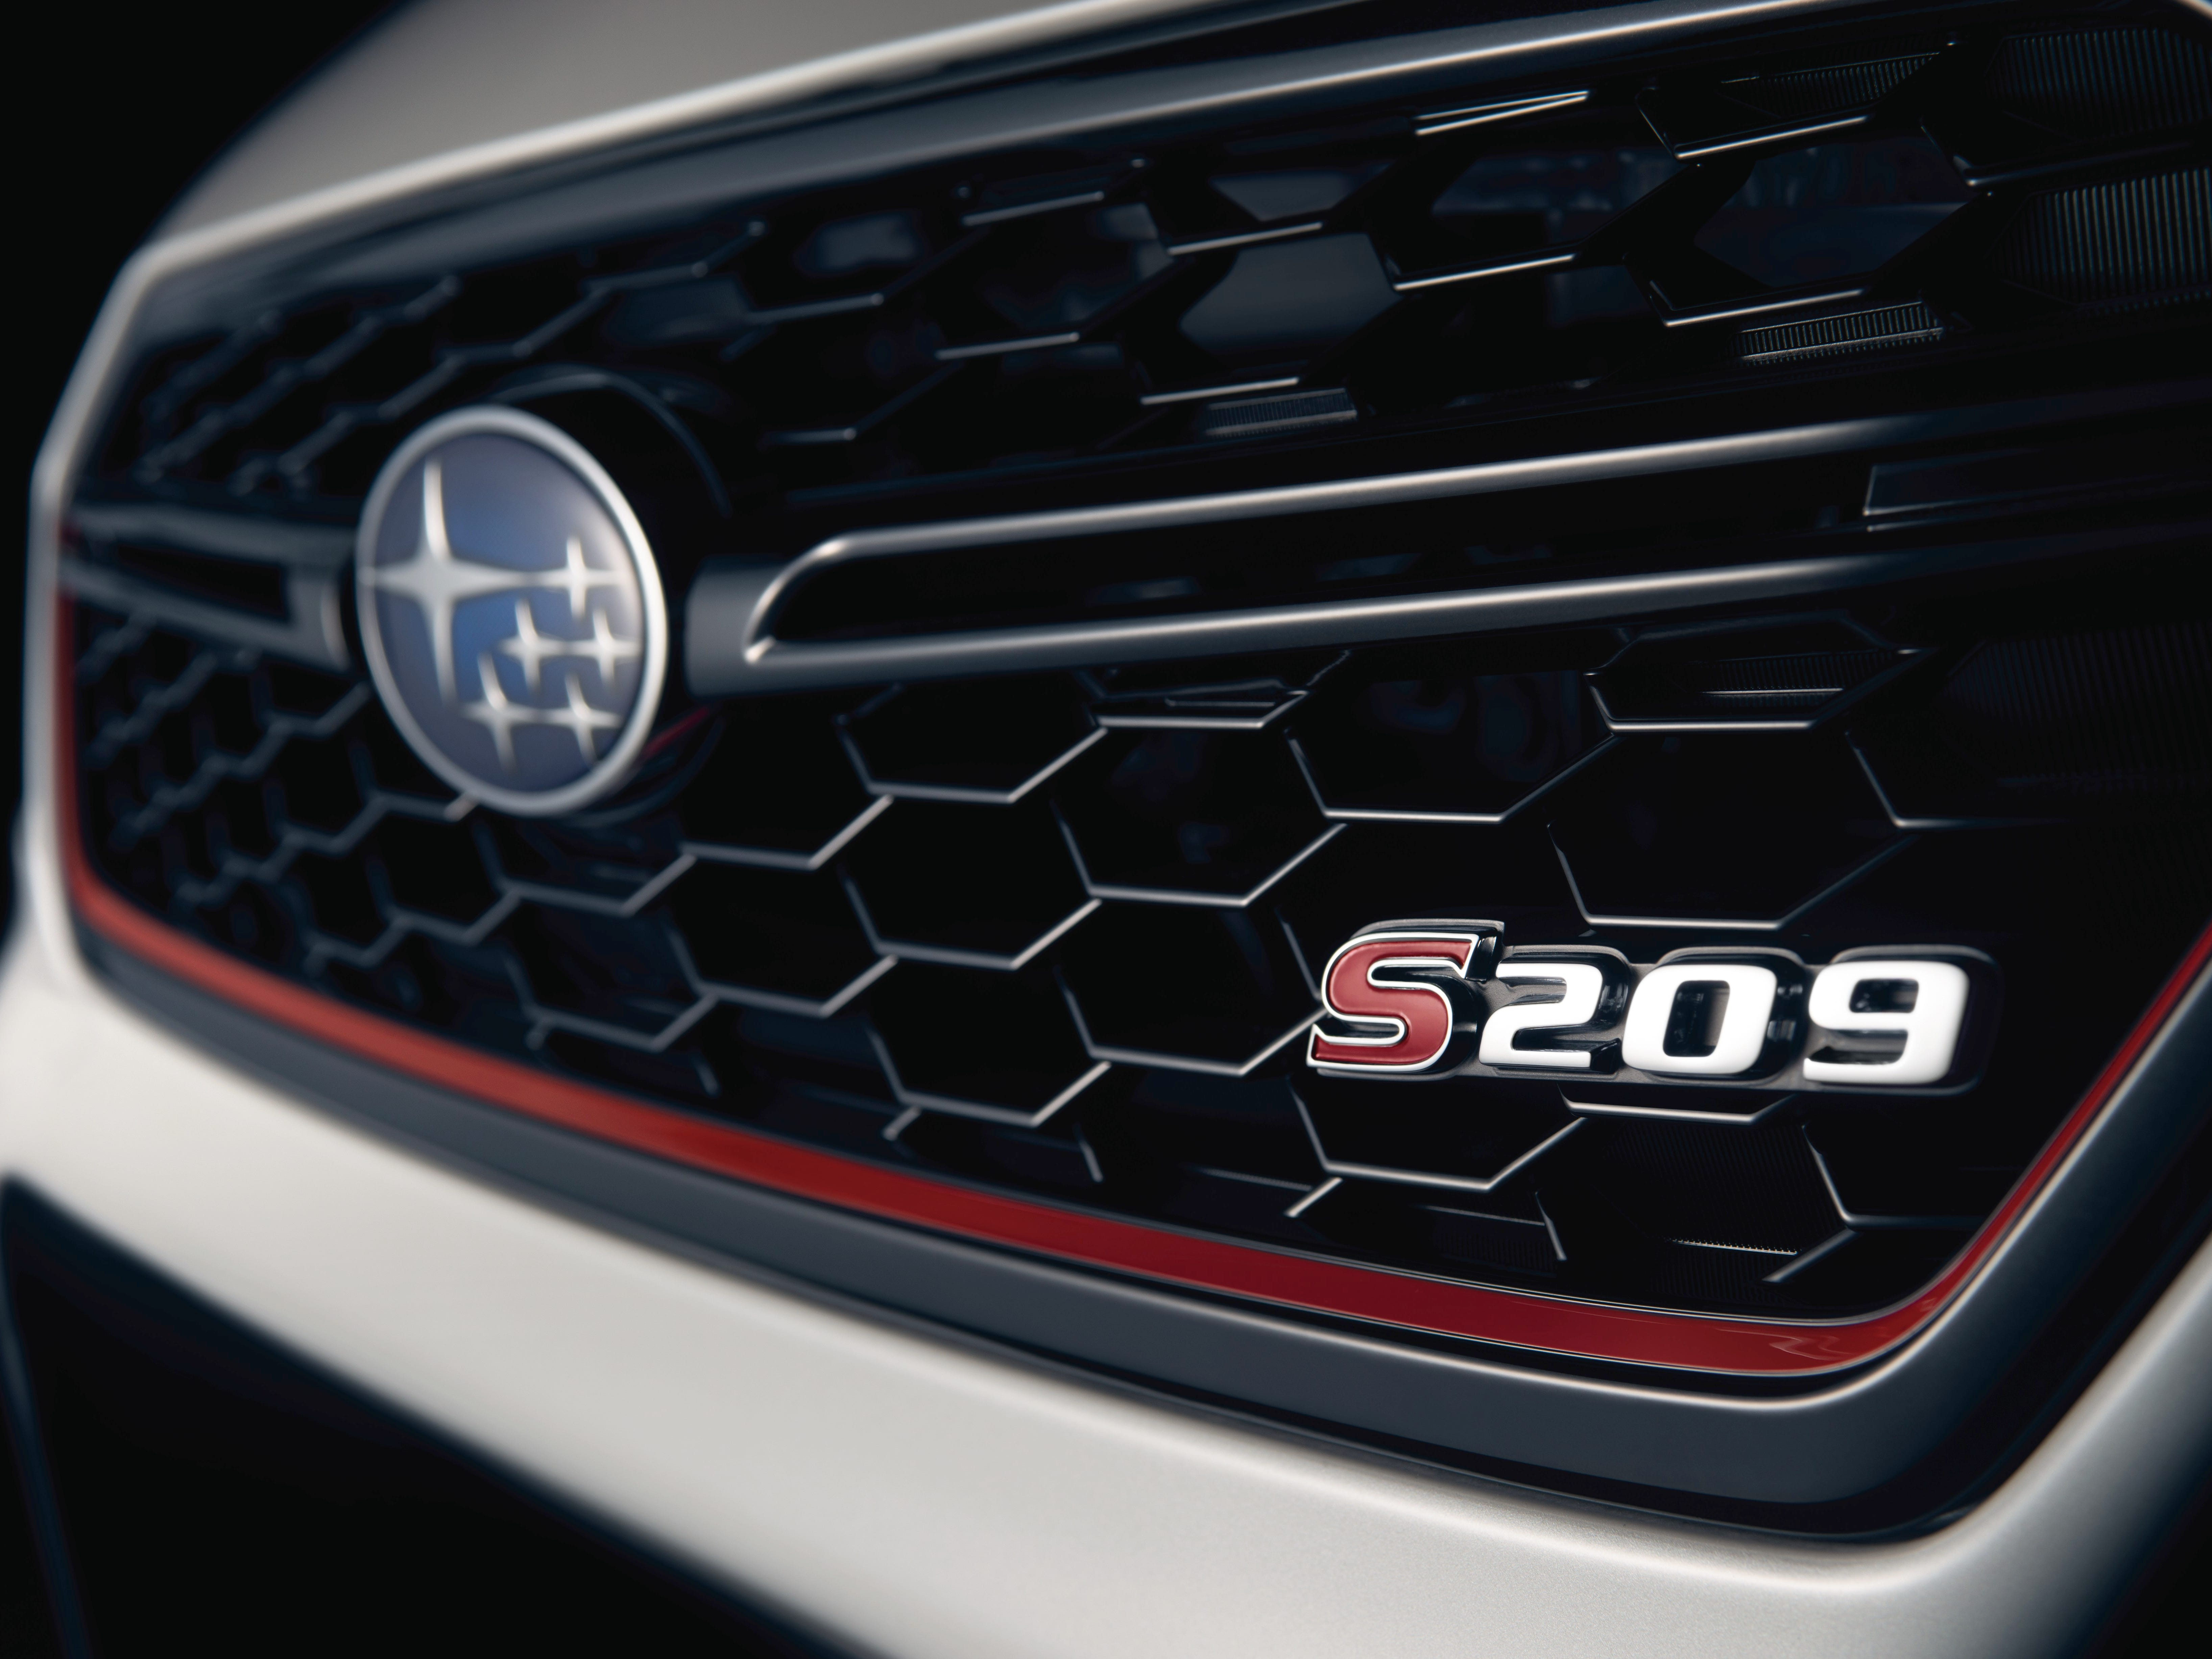 The Subaru Tecnica International to Debut the STI S209 at 2019 North American International Auto Show.